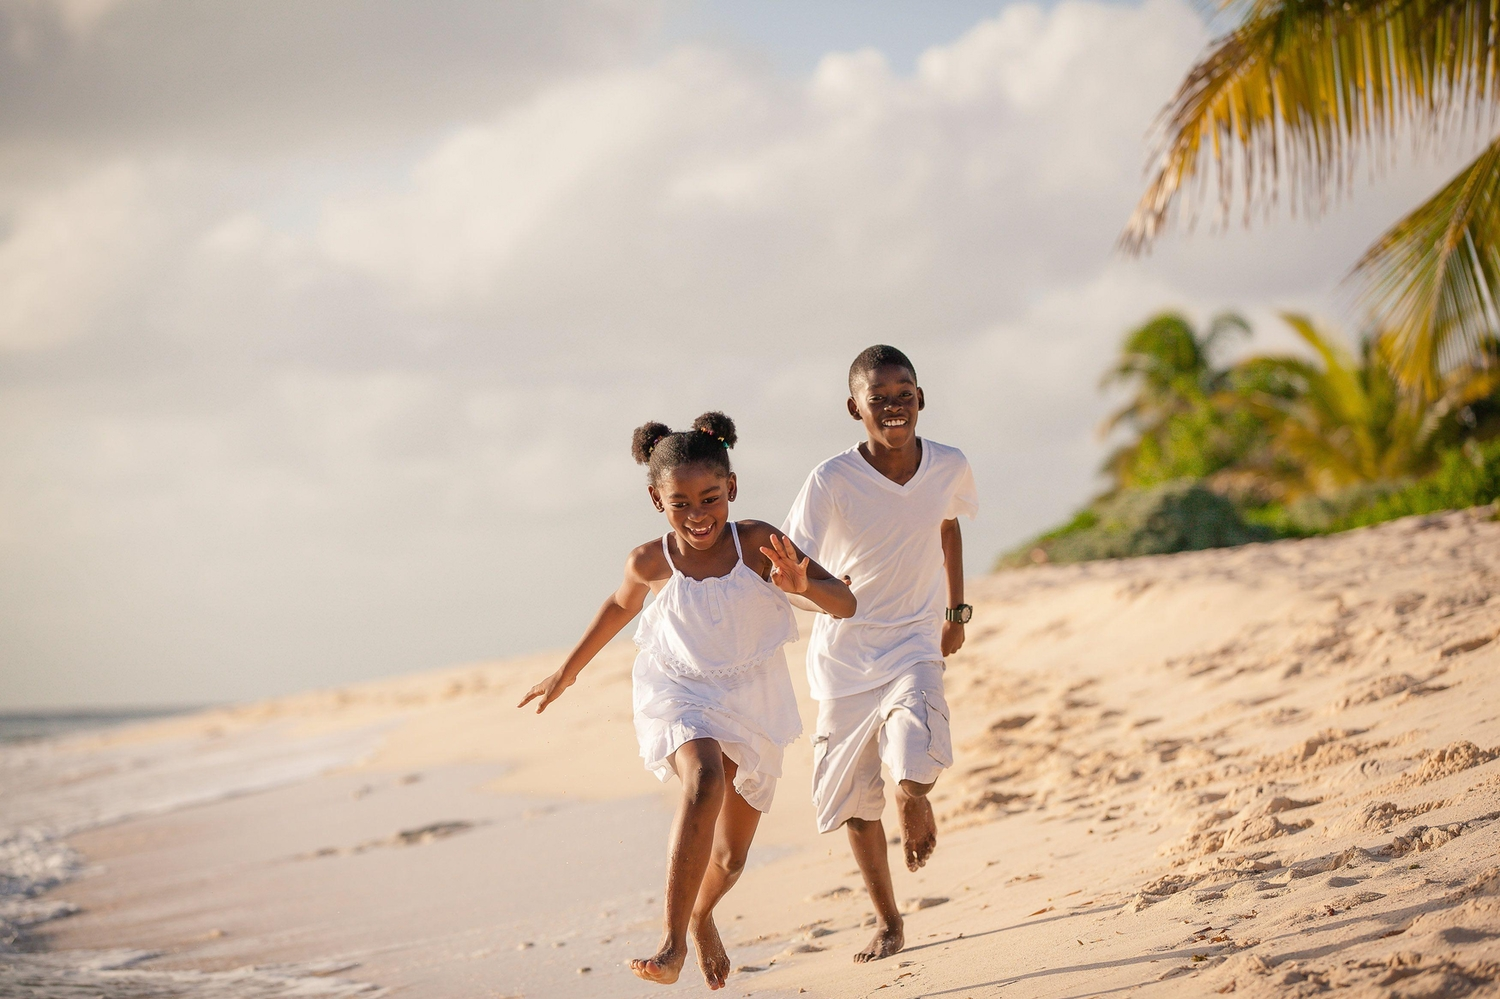 Two children running down the beach laughing